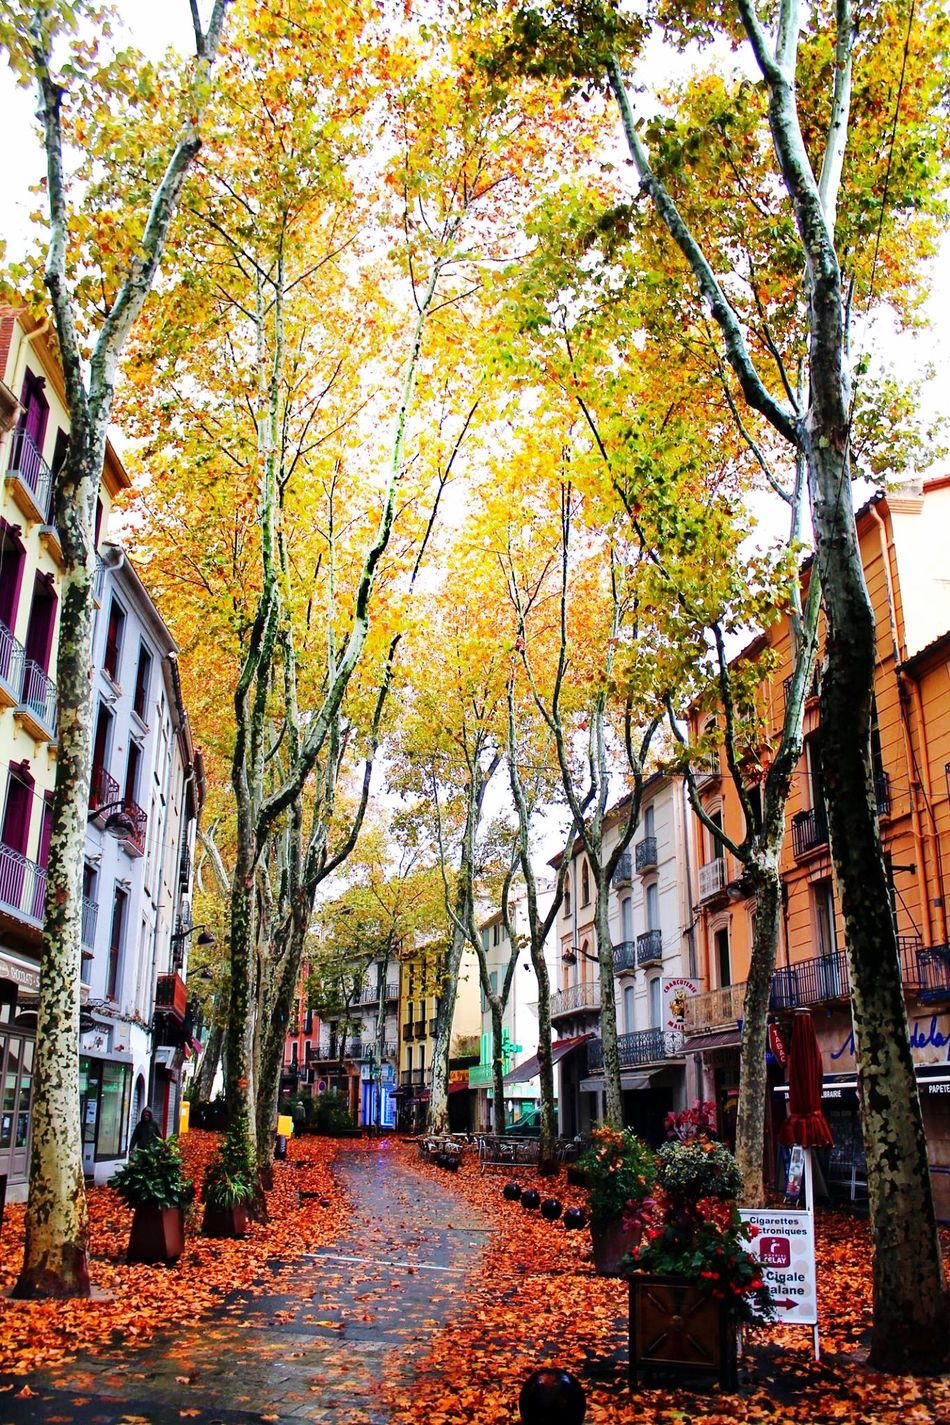 Ceret Automne Vallespir Països Catalans First Eyeem Photo